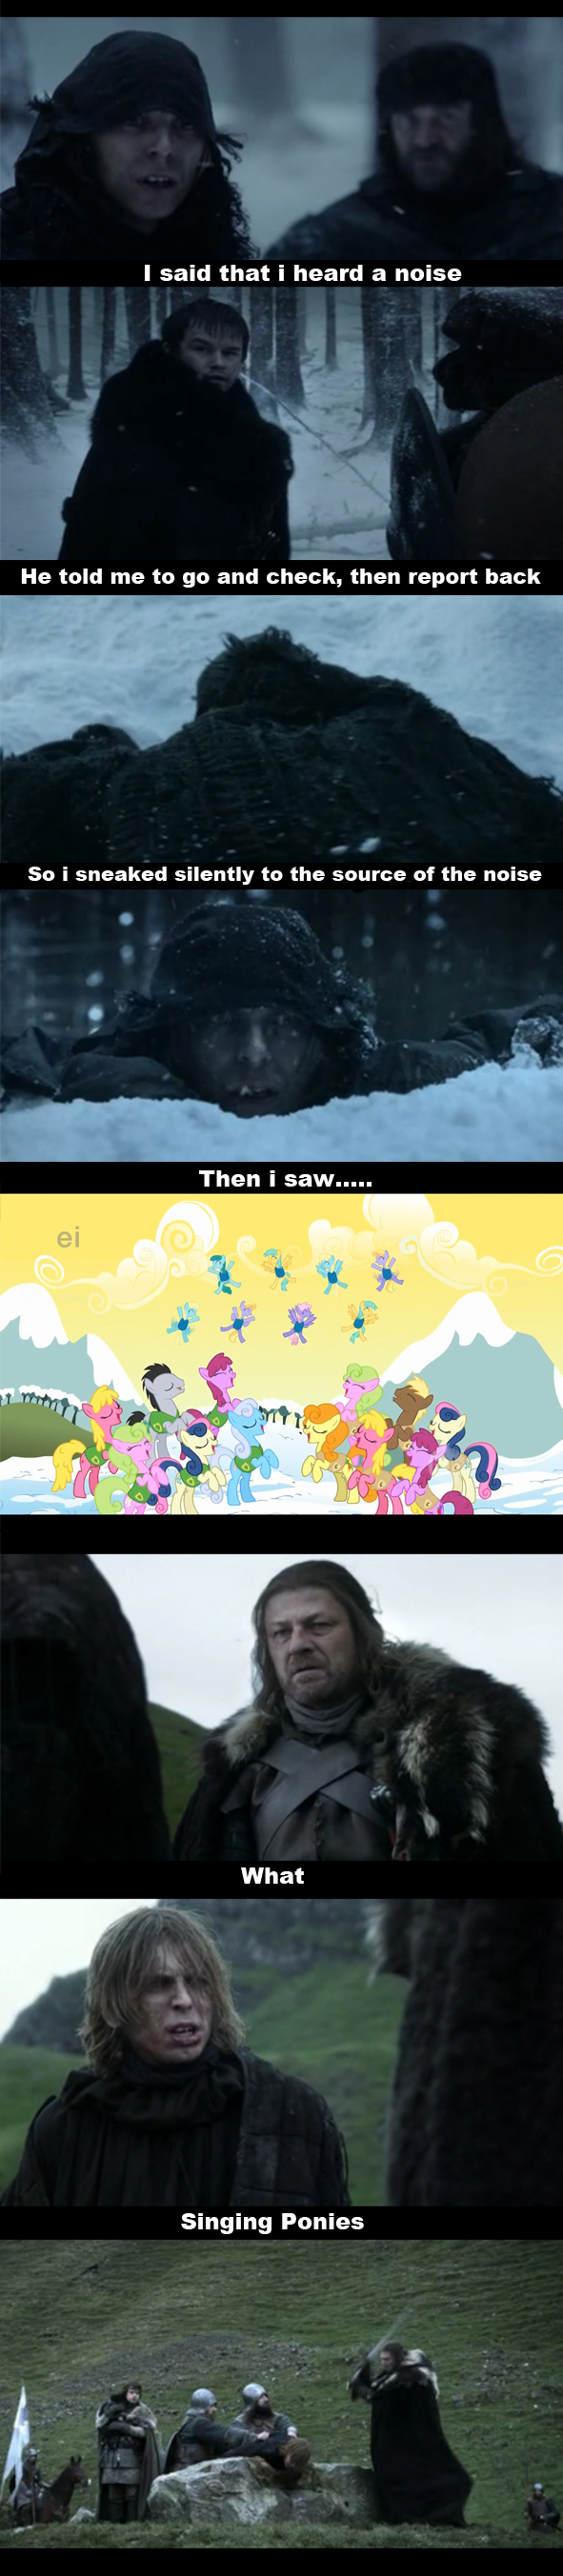 A Game of Ponies #2 - Winter is...?